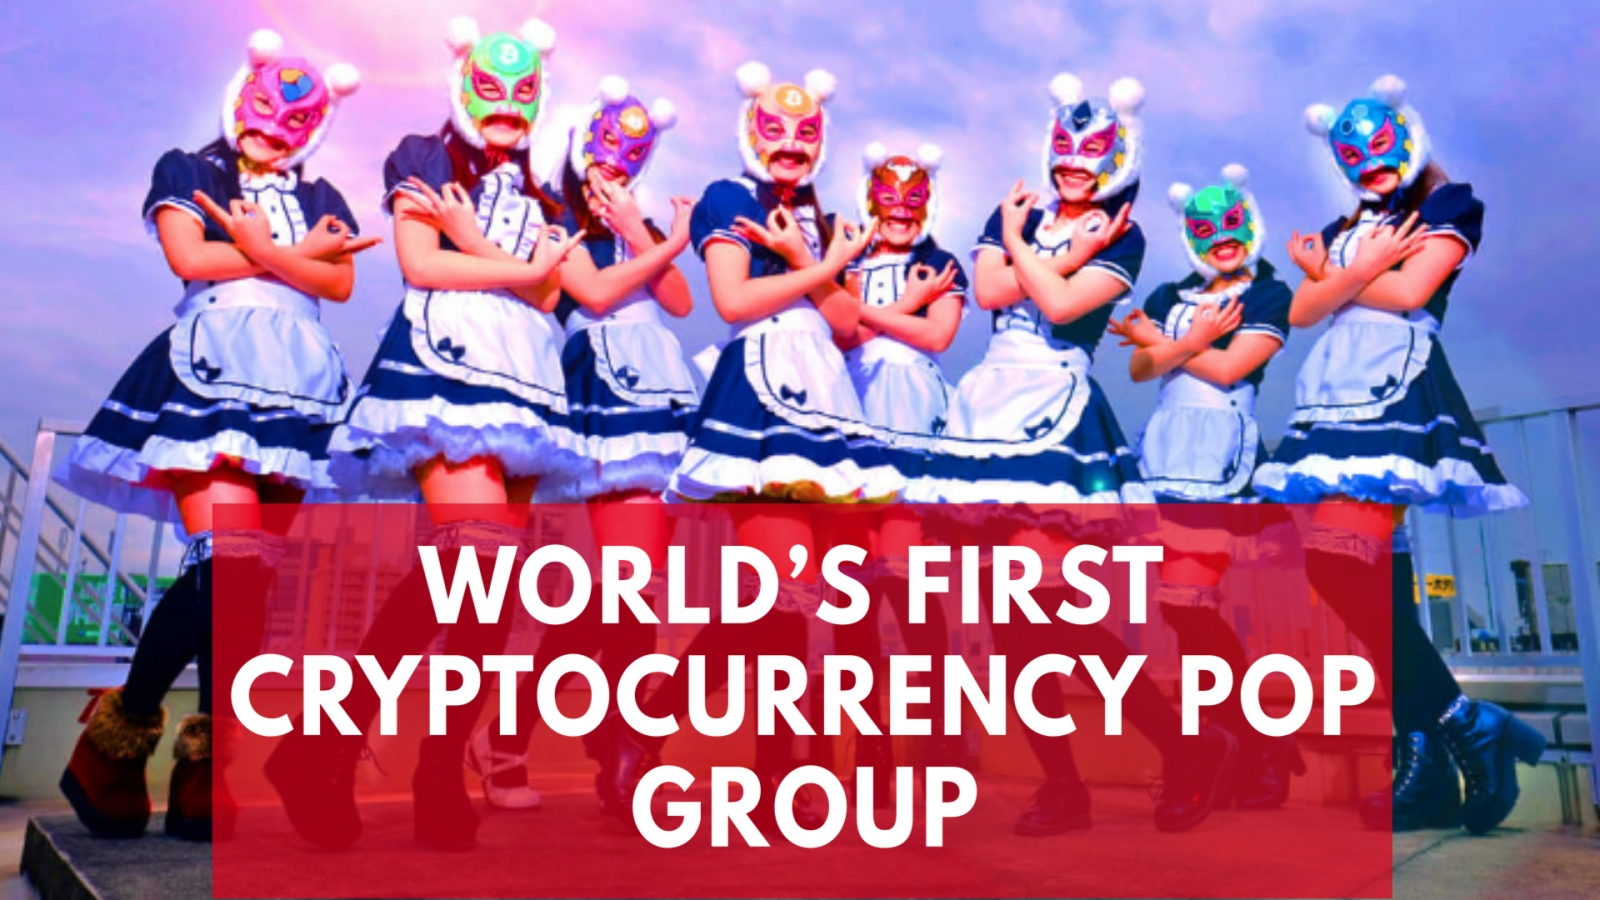 worlds-first-cryptocurrency-pop-group-makes-live-performance-debut-in-japan